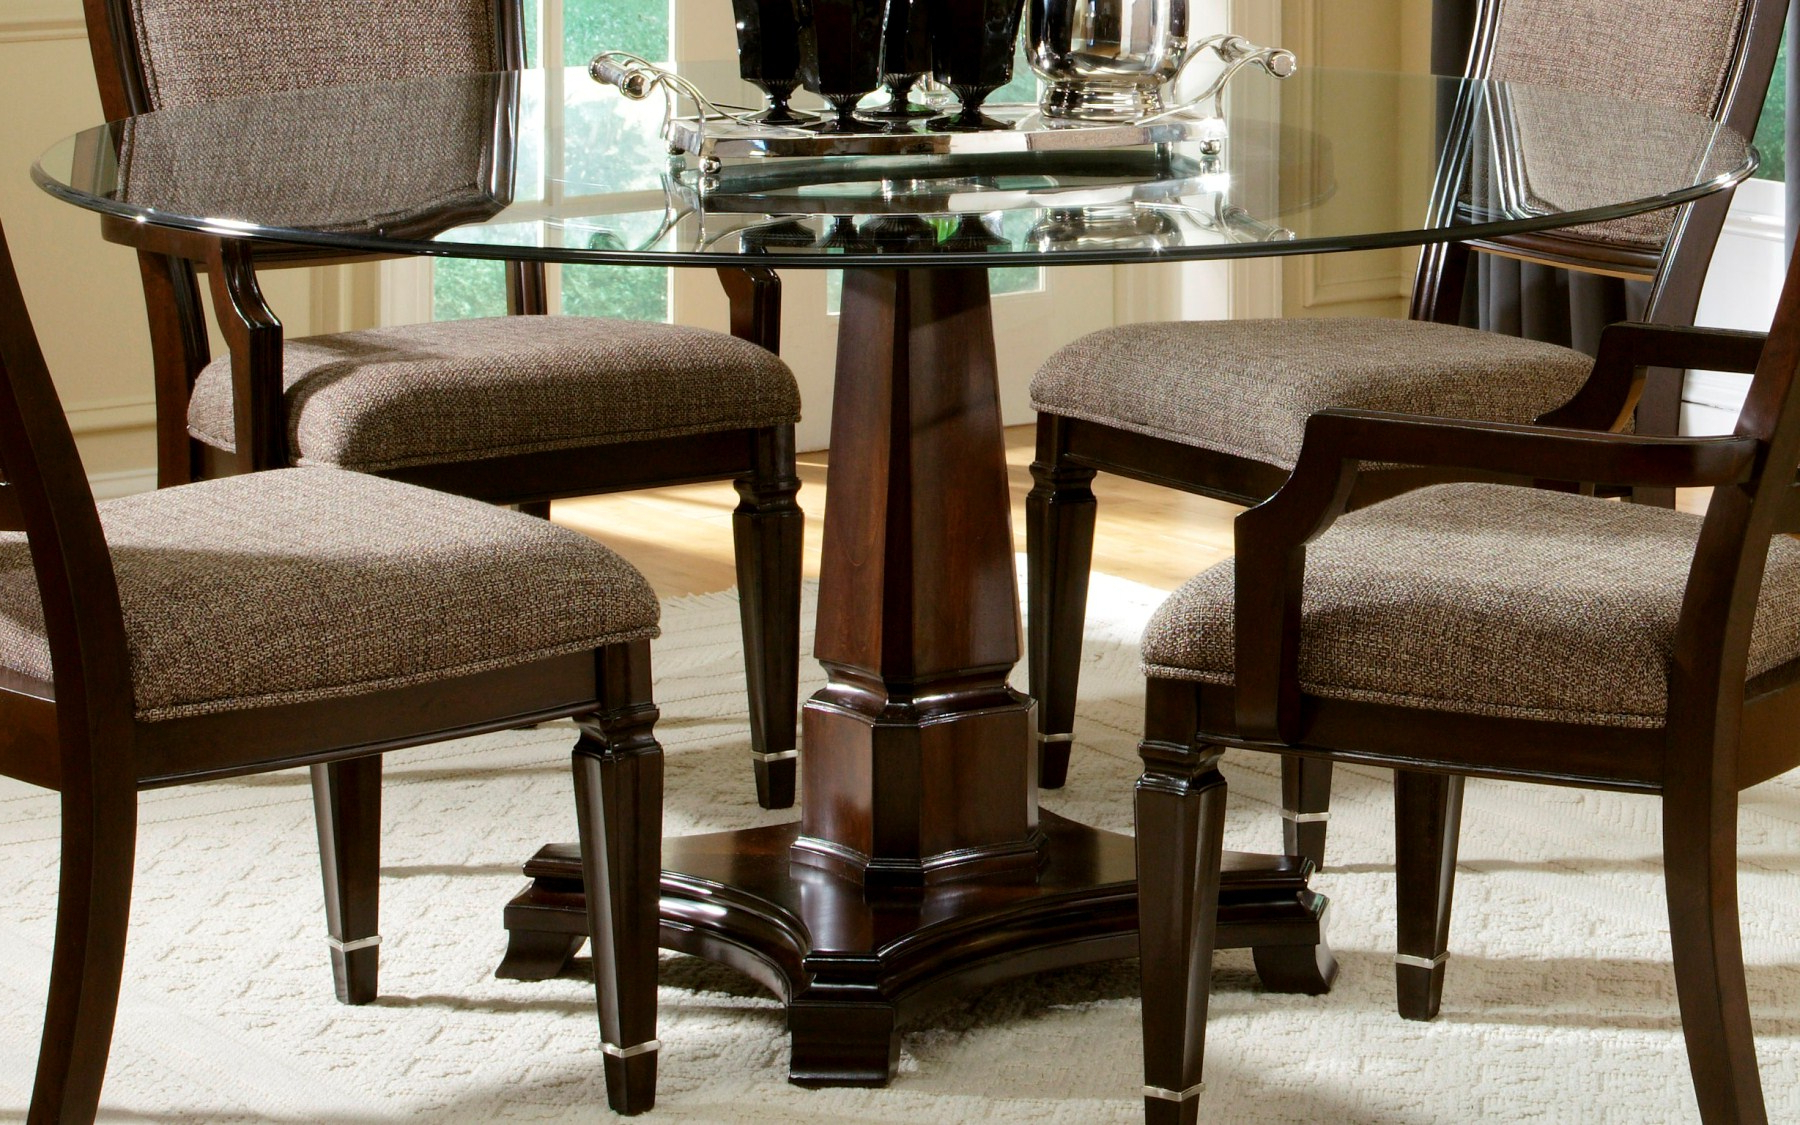 Round Glass Top Dining Tables Intended For Most Current Glass Top Dining Tables With Wood Base Interior Ideas (View 11 of 25)